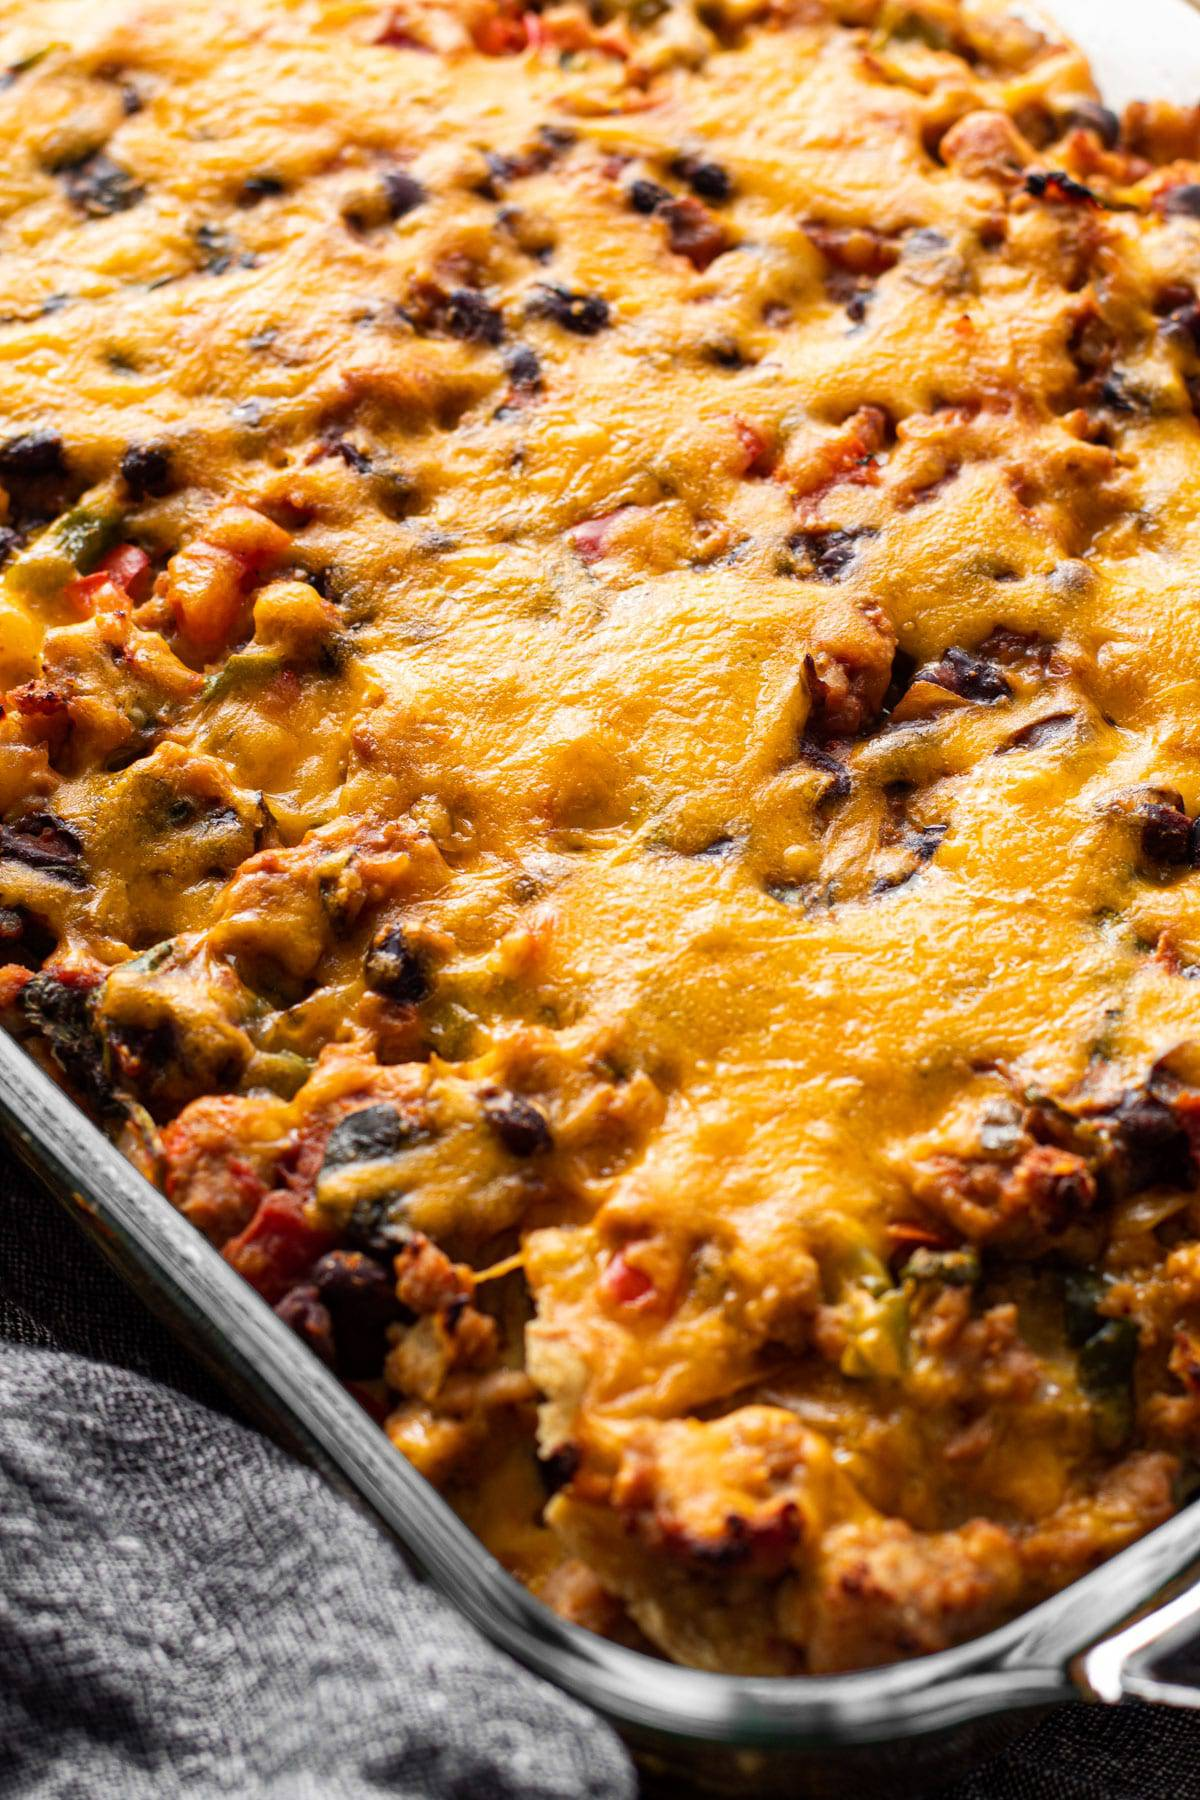 A cheesy top on a baked Mexican breakfast casserole.